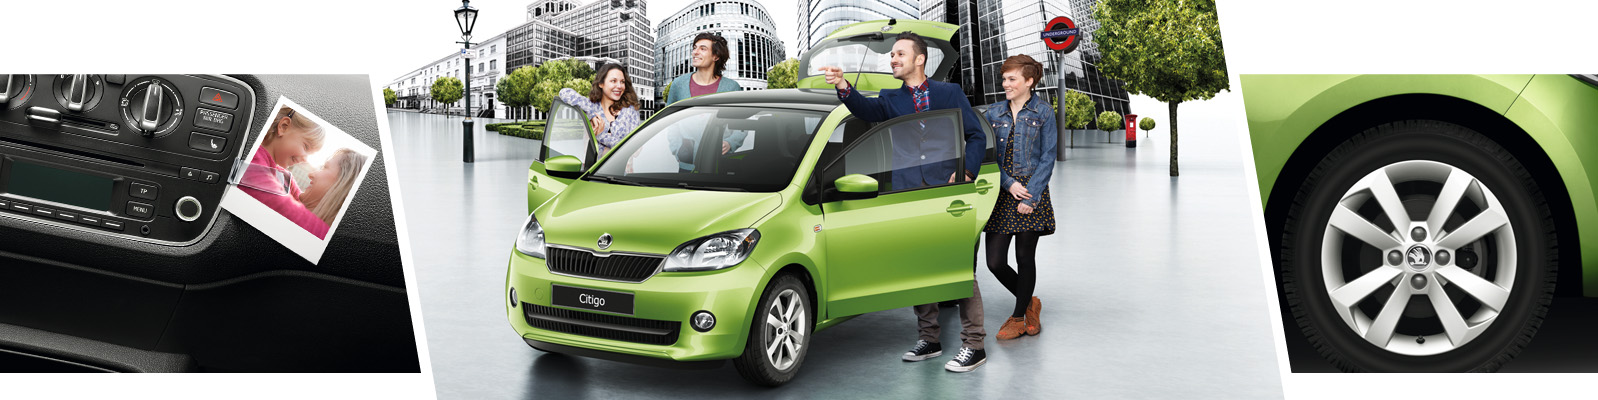 The new SKODA Citigo range - Voted What Car? Car of the Year from Bickerton ŠKODA, Sheffield, South Yorkshire.